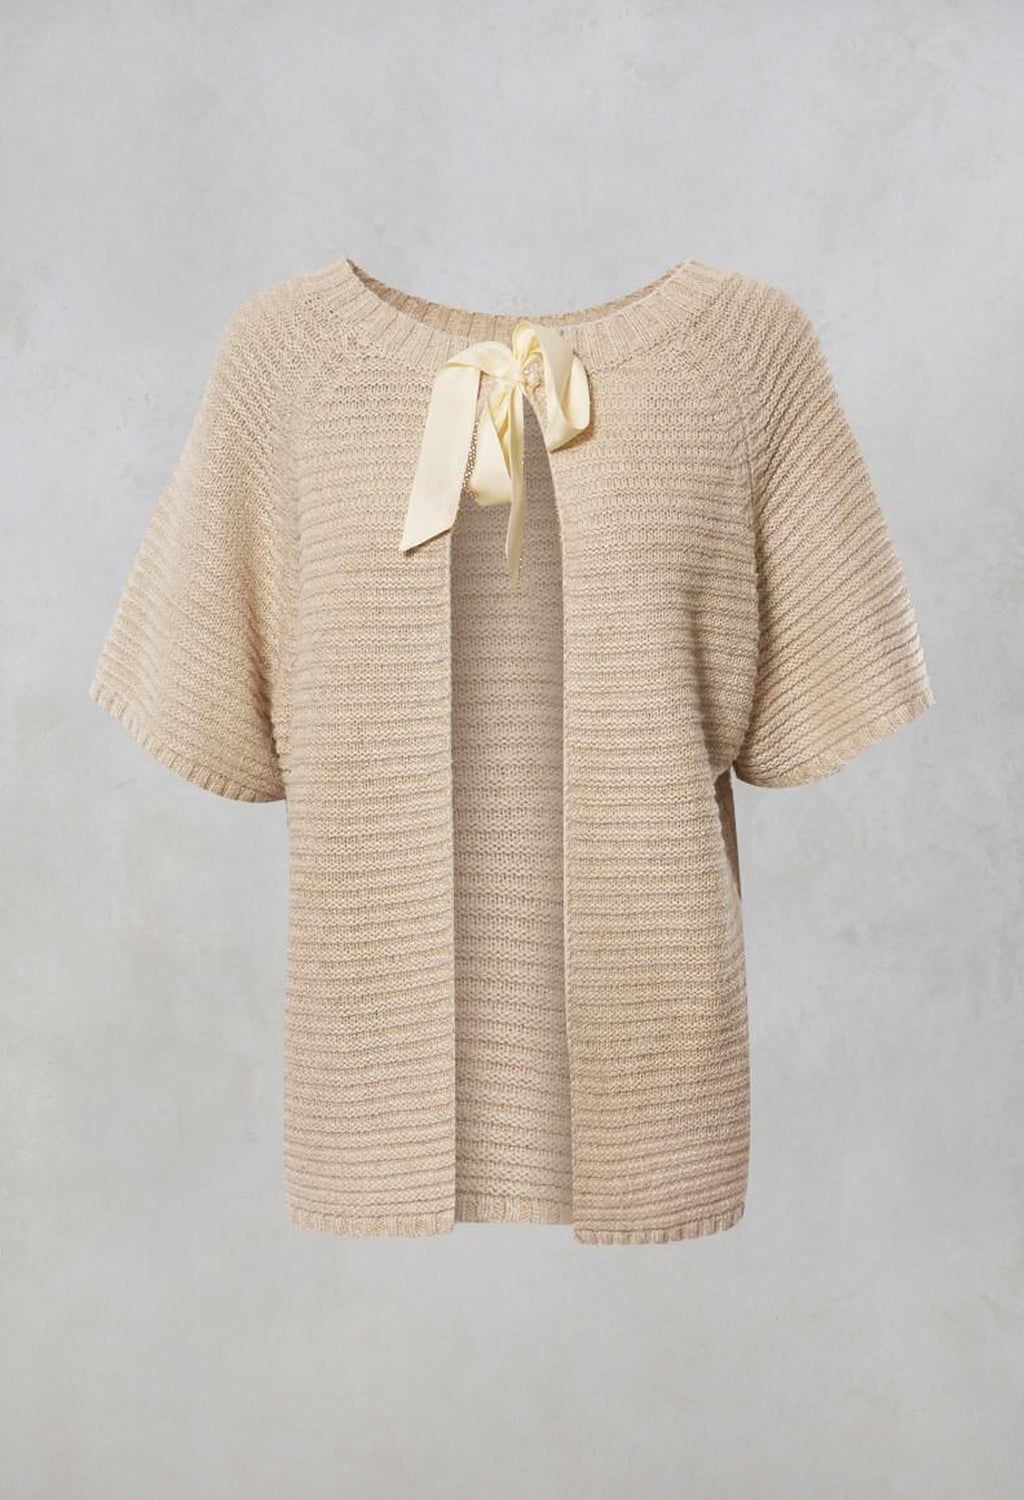 Ninon Knitted Top with Tie Back in Jute Lin